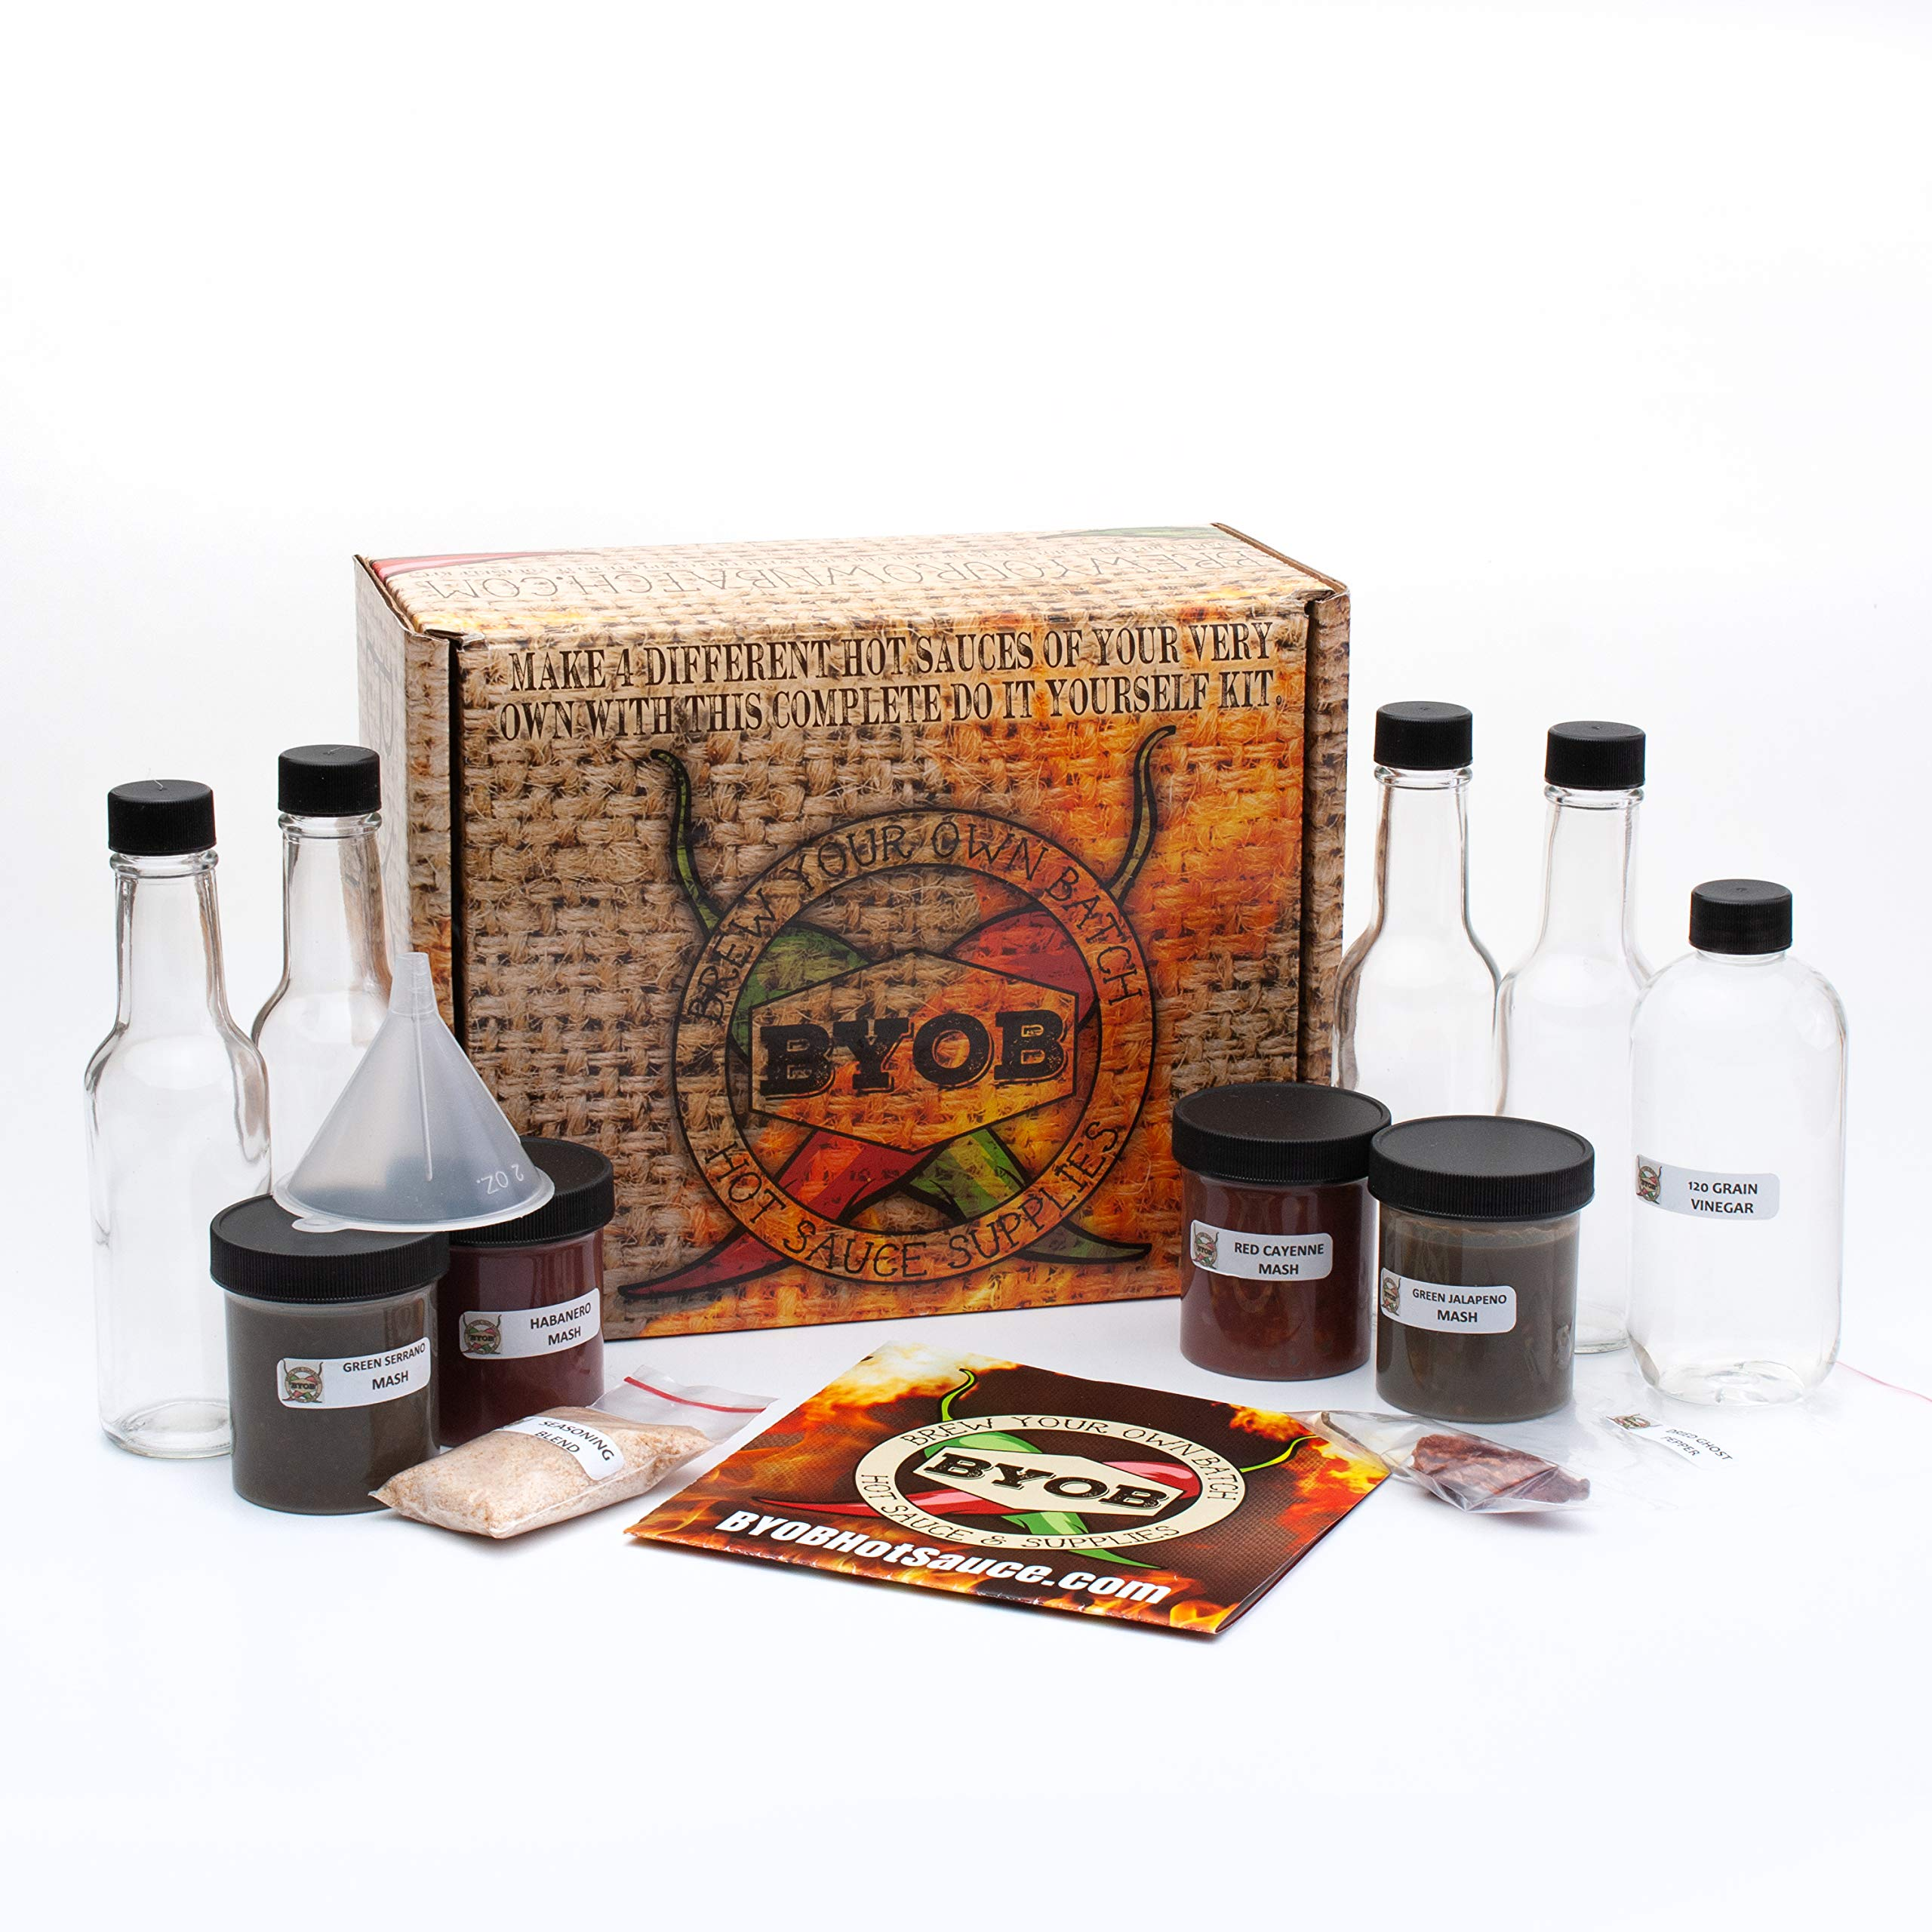 DIY Hot Sauce Making Kit, This Hot Sauce Gift Set Makes 4 Different Bottles of 5oz Gourmet Hot Sauce, Contains Everything You Need to Make Your Own Hot Sauce